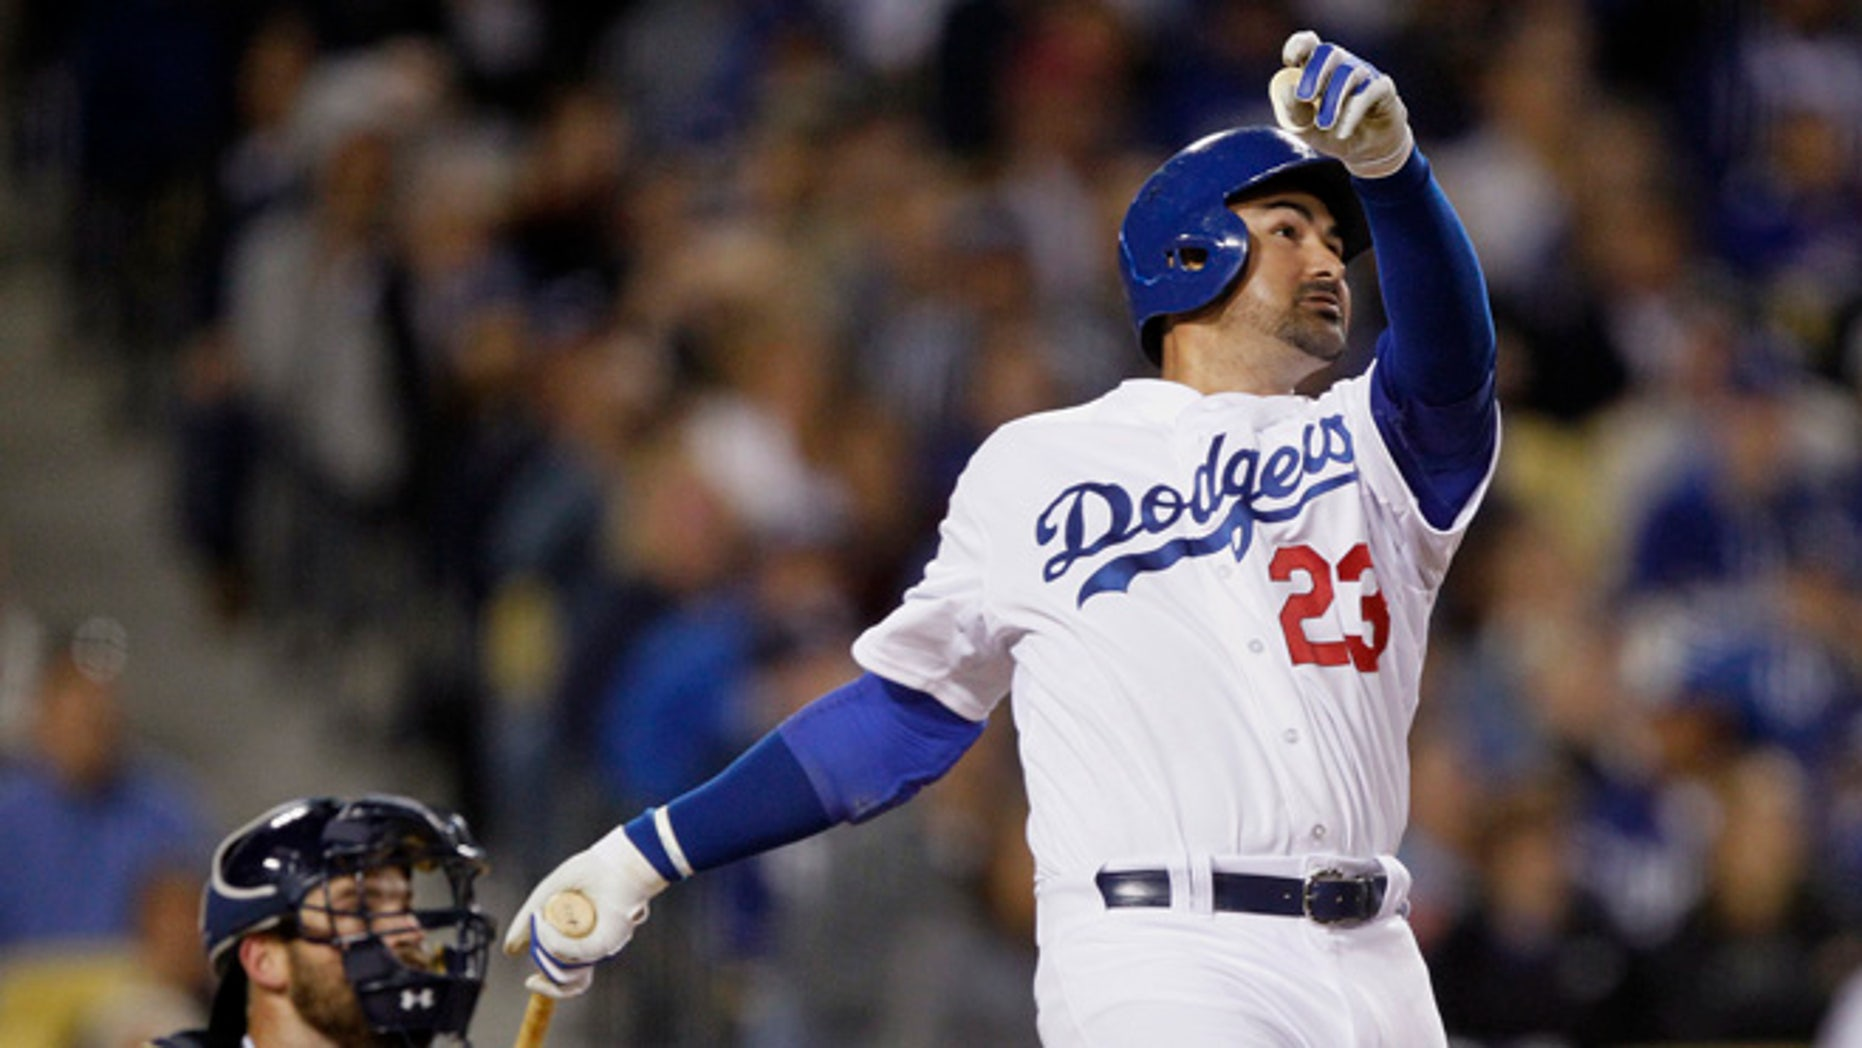 Los Angeles Dodgers' Adrian Gonzalez watches his solo home run in front of San Diego Padres catcher Derek Norris during the fifth inning of a baseball game in Los Angeles, Wednesday, April 8, 2015. It was Gonzalez's third homer of the night. (AP Photo/Alex Gallardo)